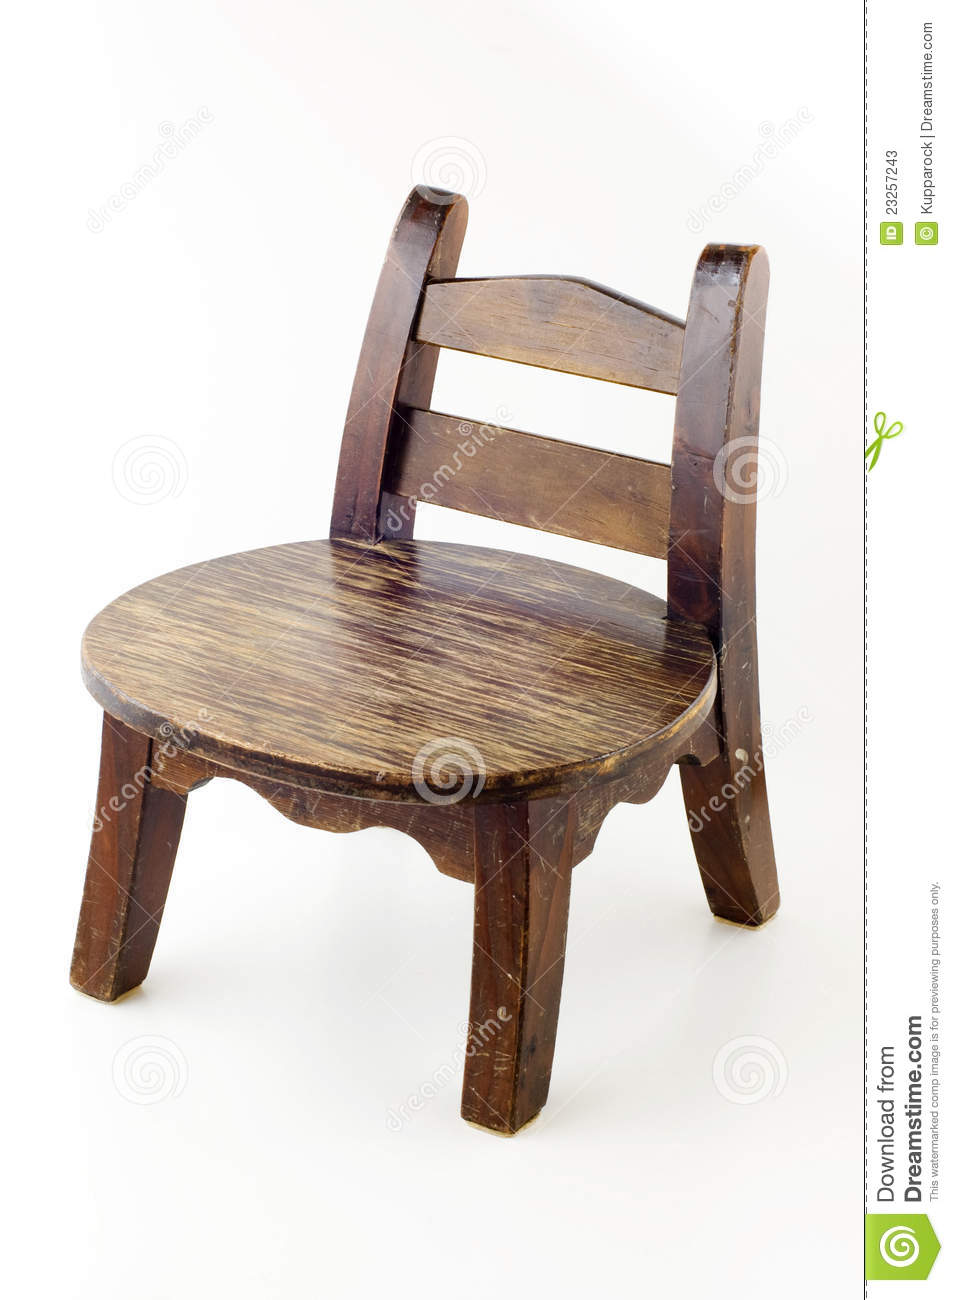 Charmant Old Wooden Chair. Small Chair.